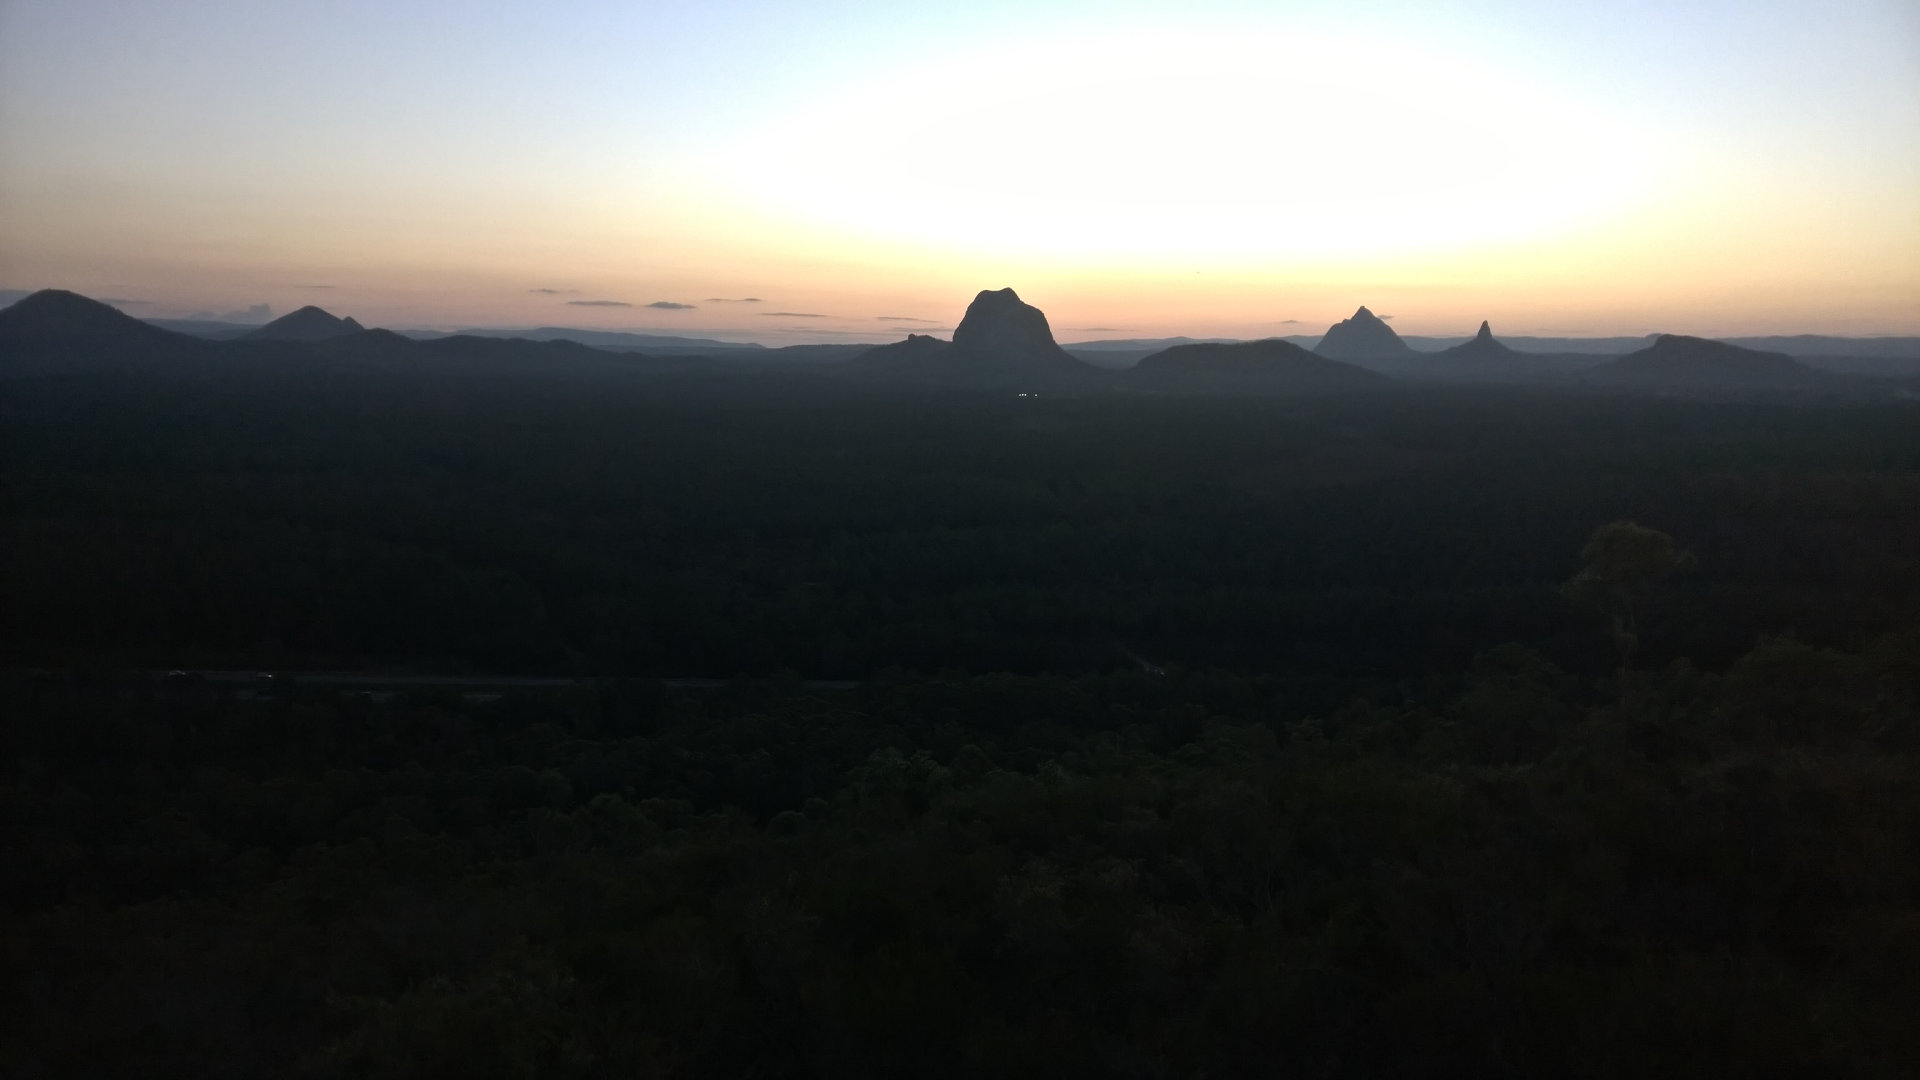 View at dusk looking west from Wild Horse Mountain Lookout with Glass House Mountains peaks on the horizon. The lookout has 360 degree views including towards Brisbane, Redcliffe, Moreton Island, Bribie Island, and more